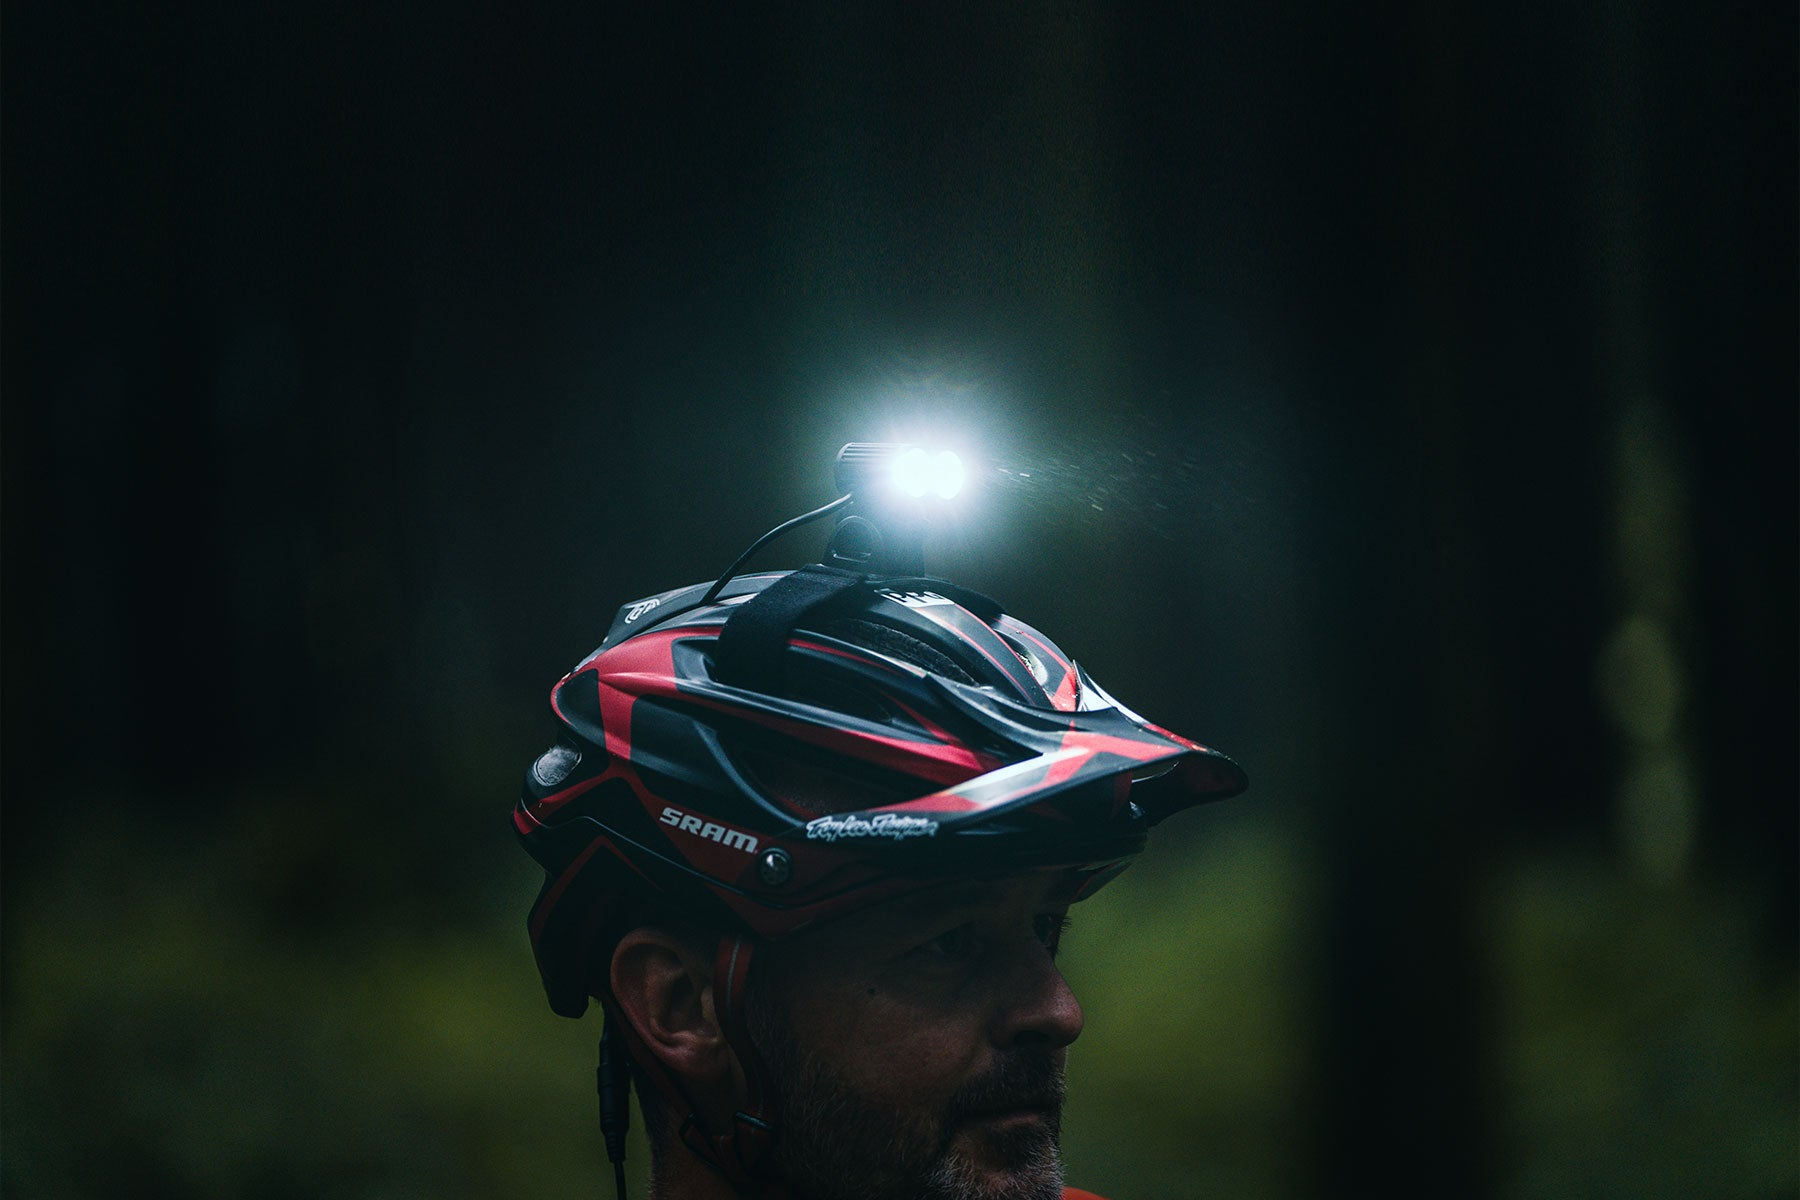 Duo 2200 Multisport | Gemini Lights